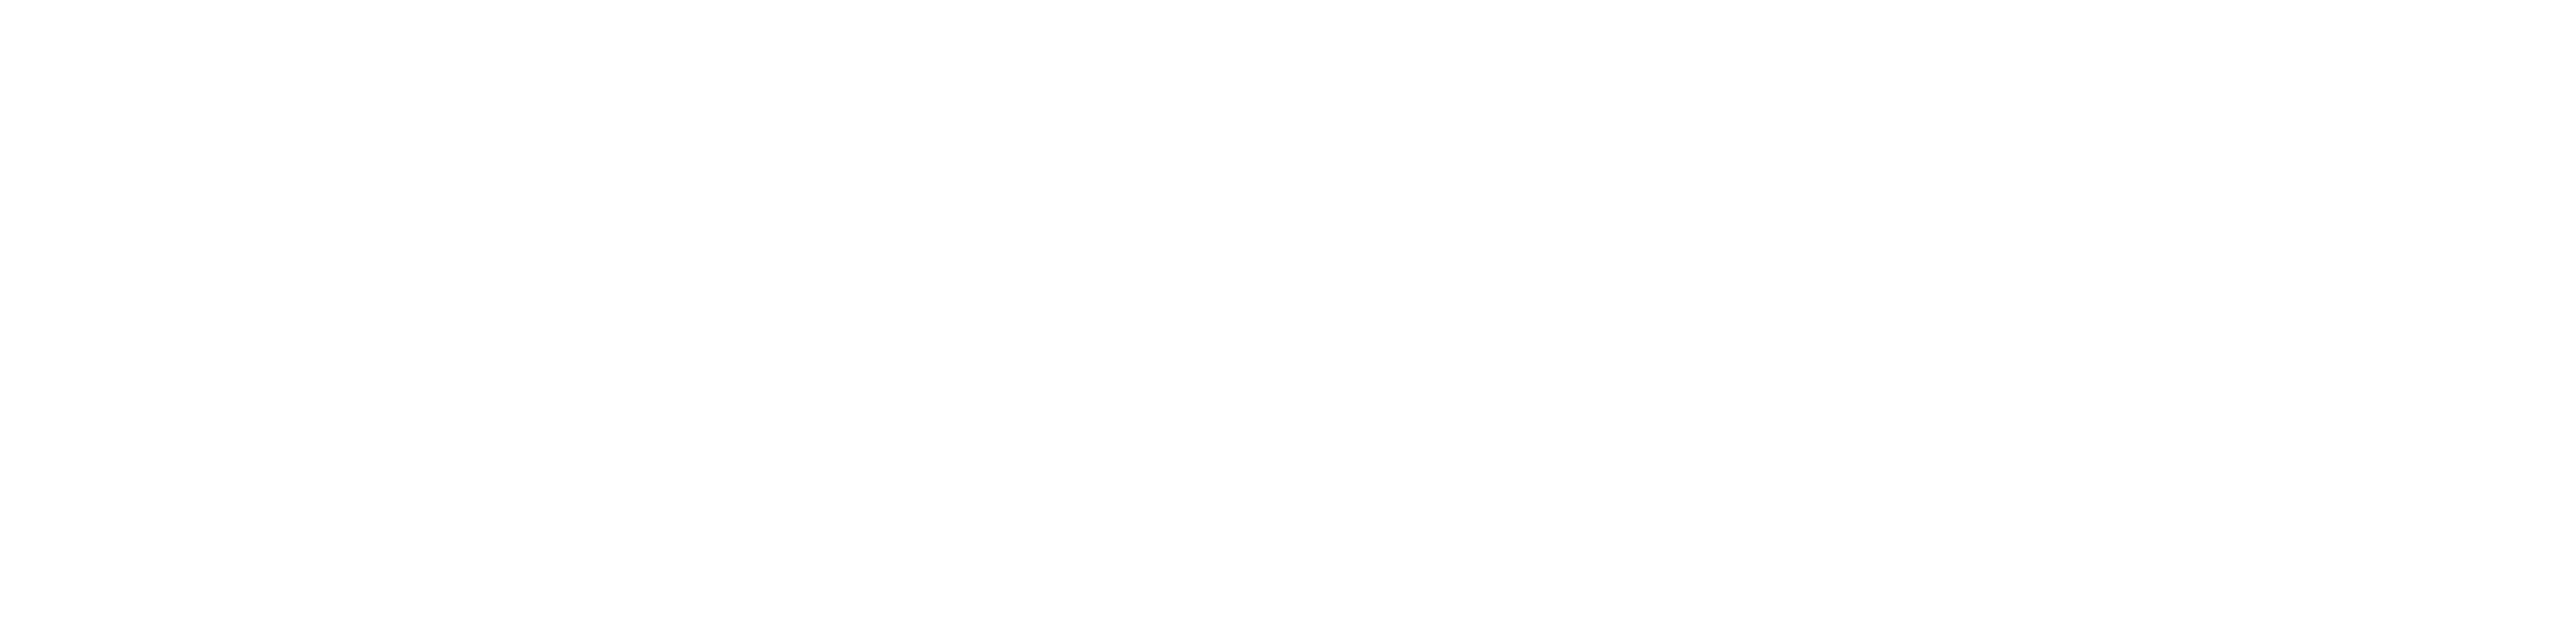 Focal Point White Logo.png